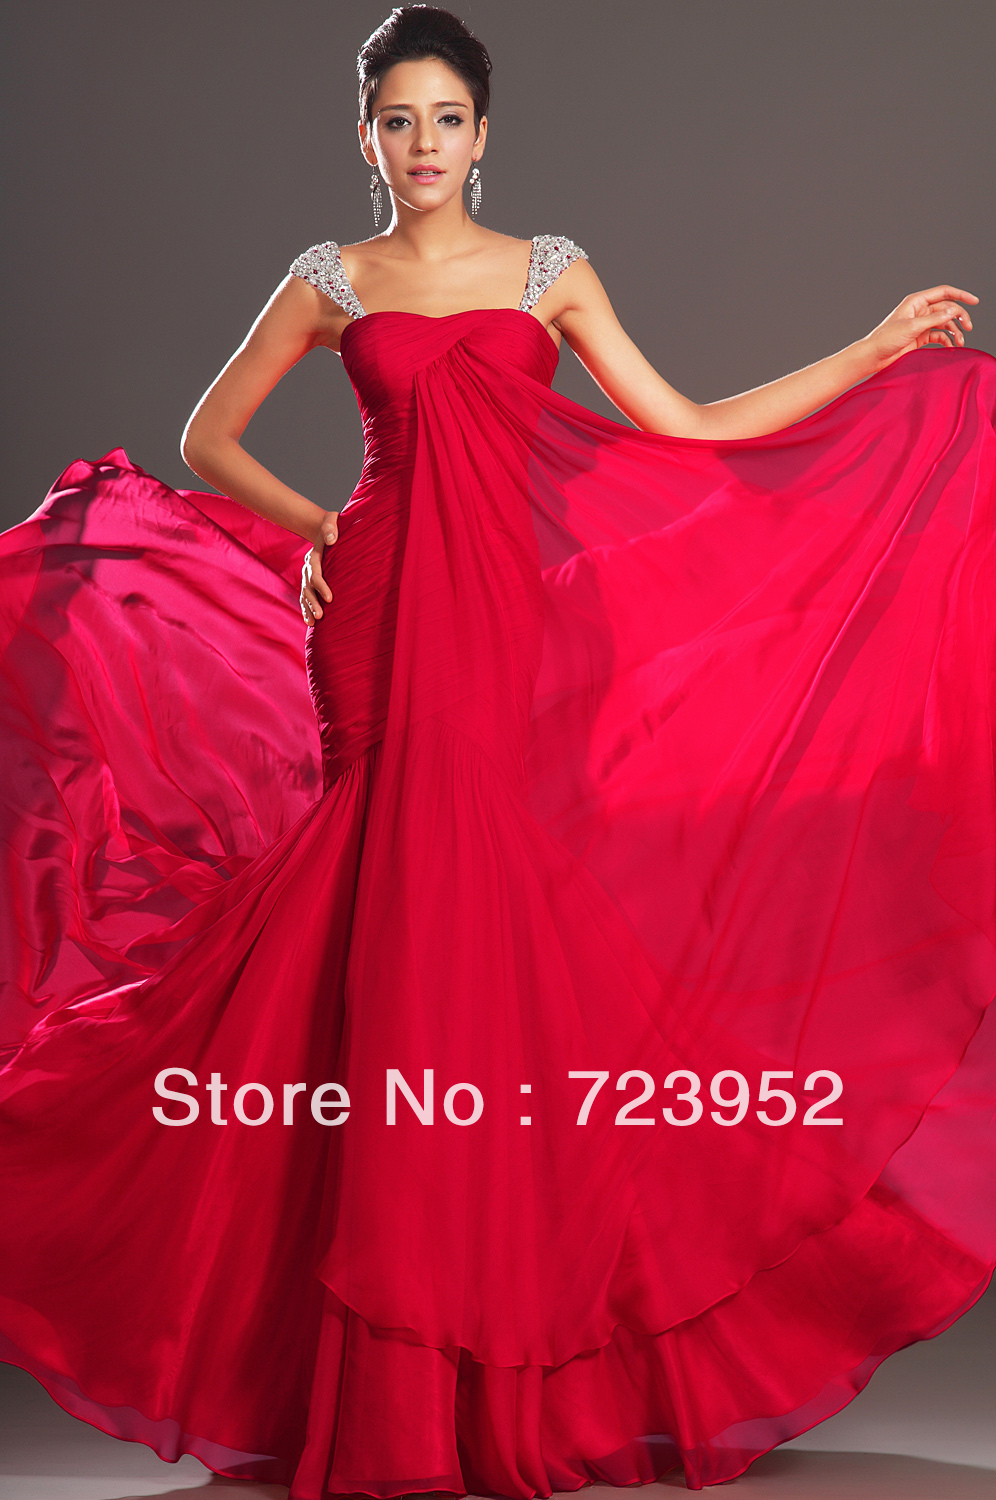 fitted red evening gowns - photo #48